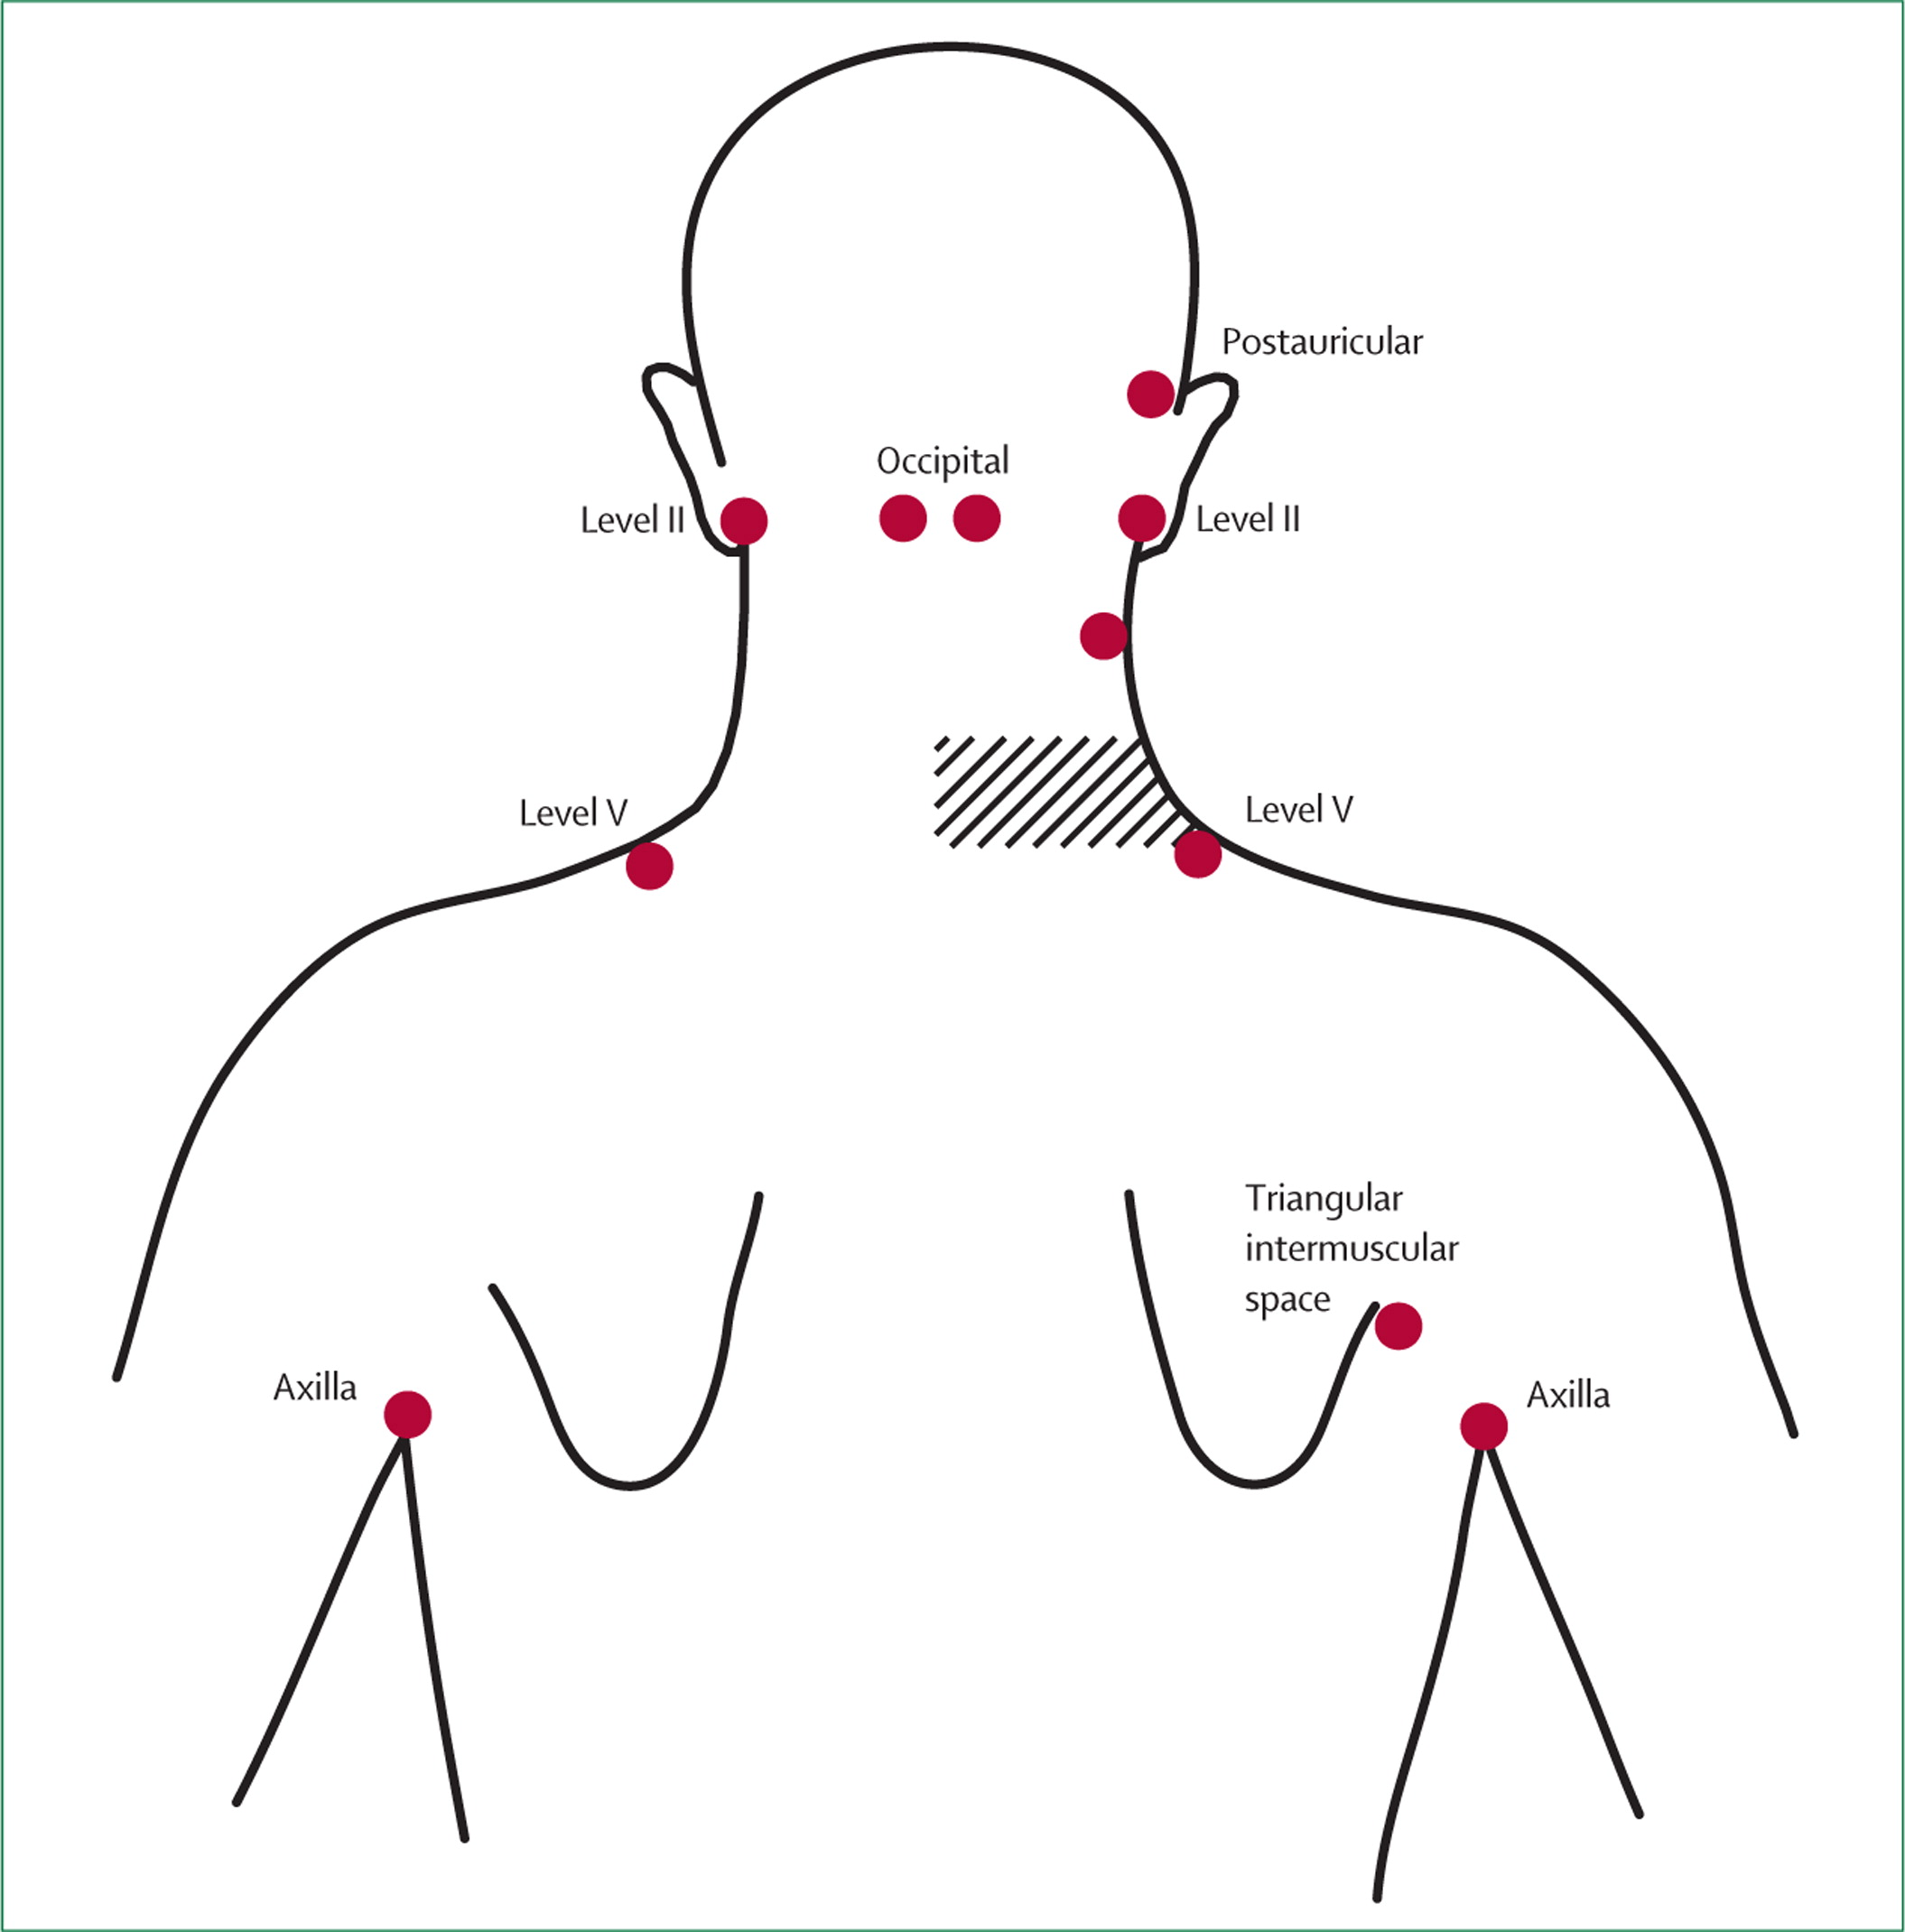 Lymphatic Mapping In Management Of Patients With Primary